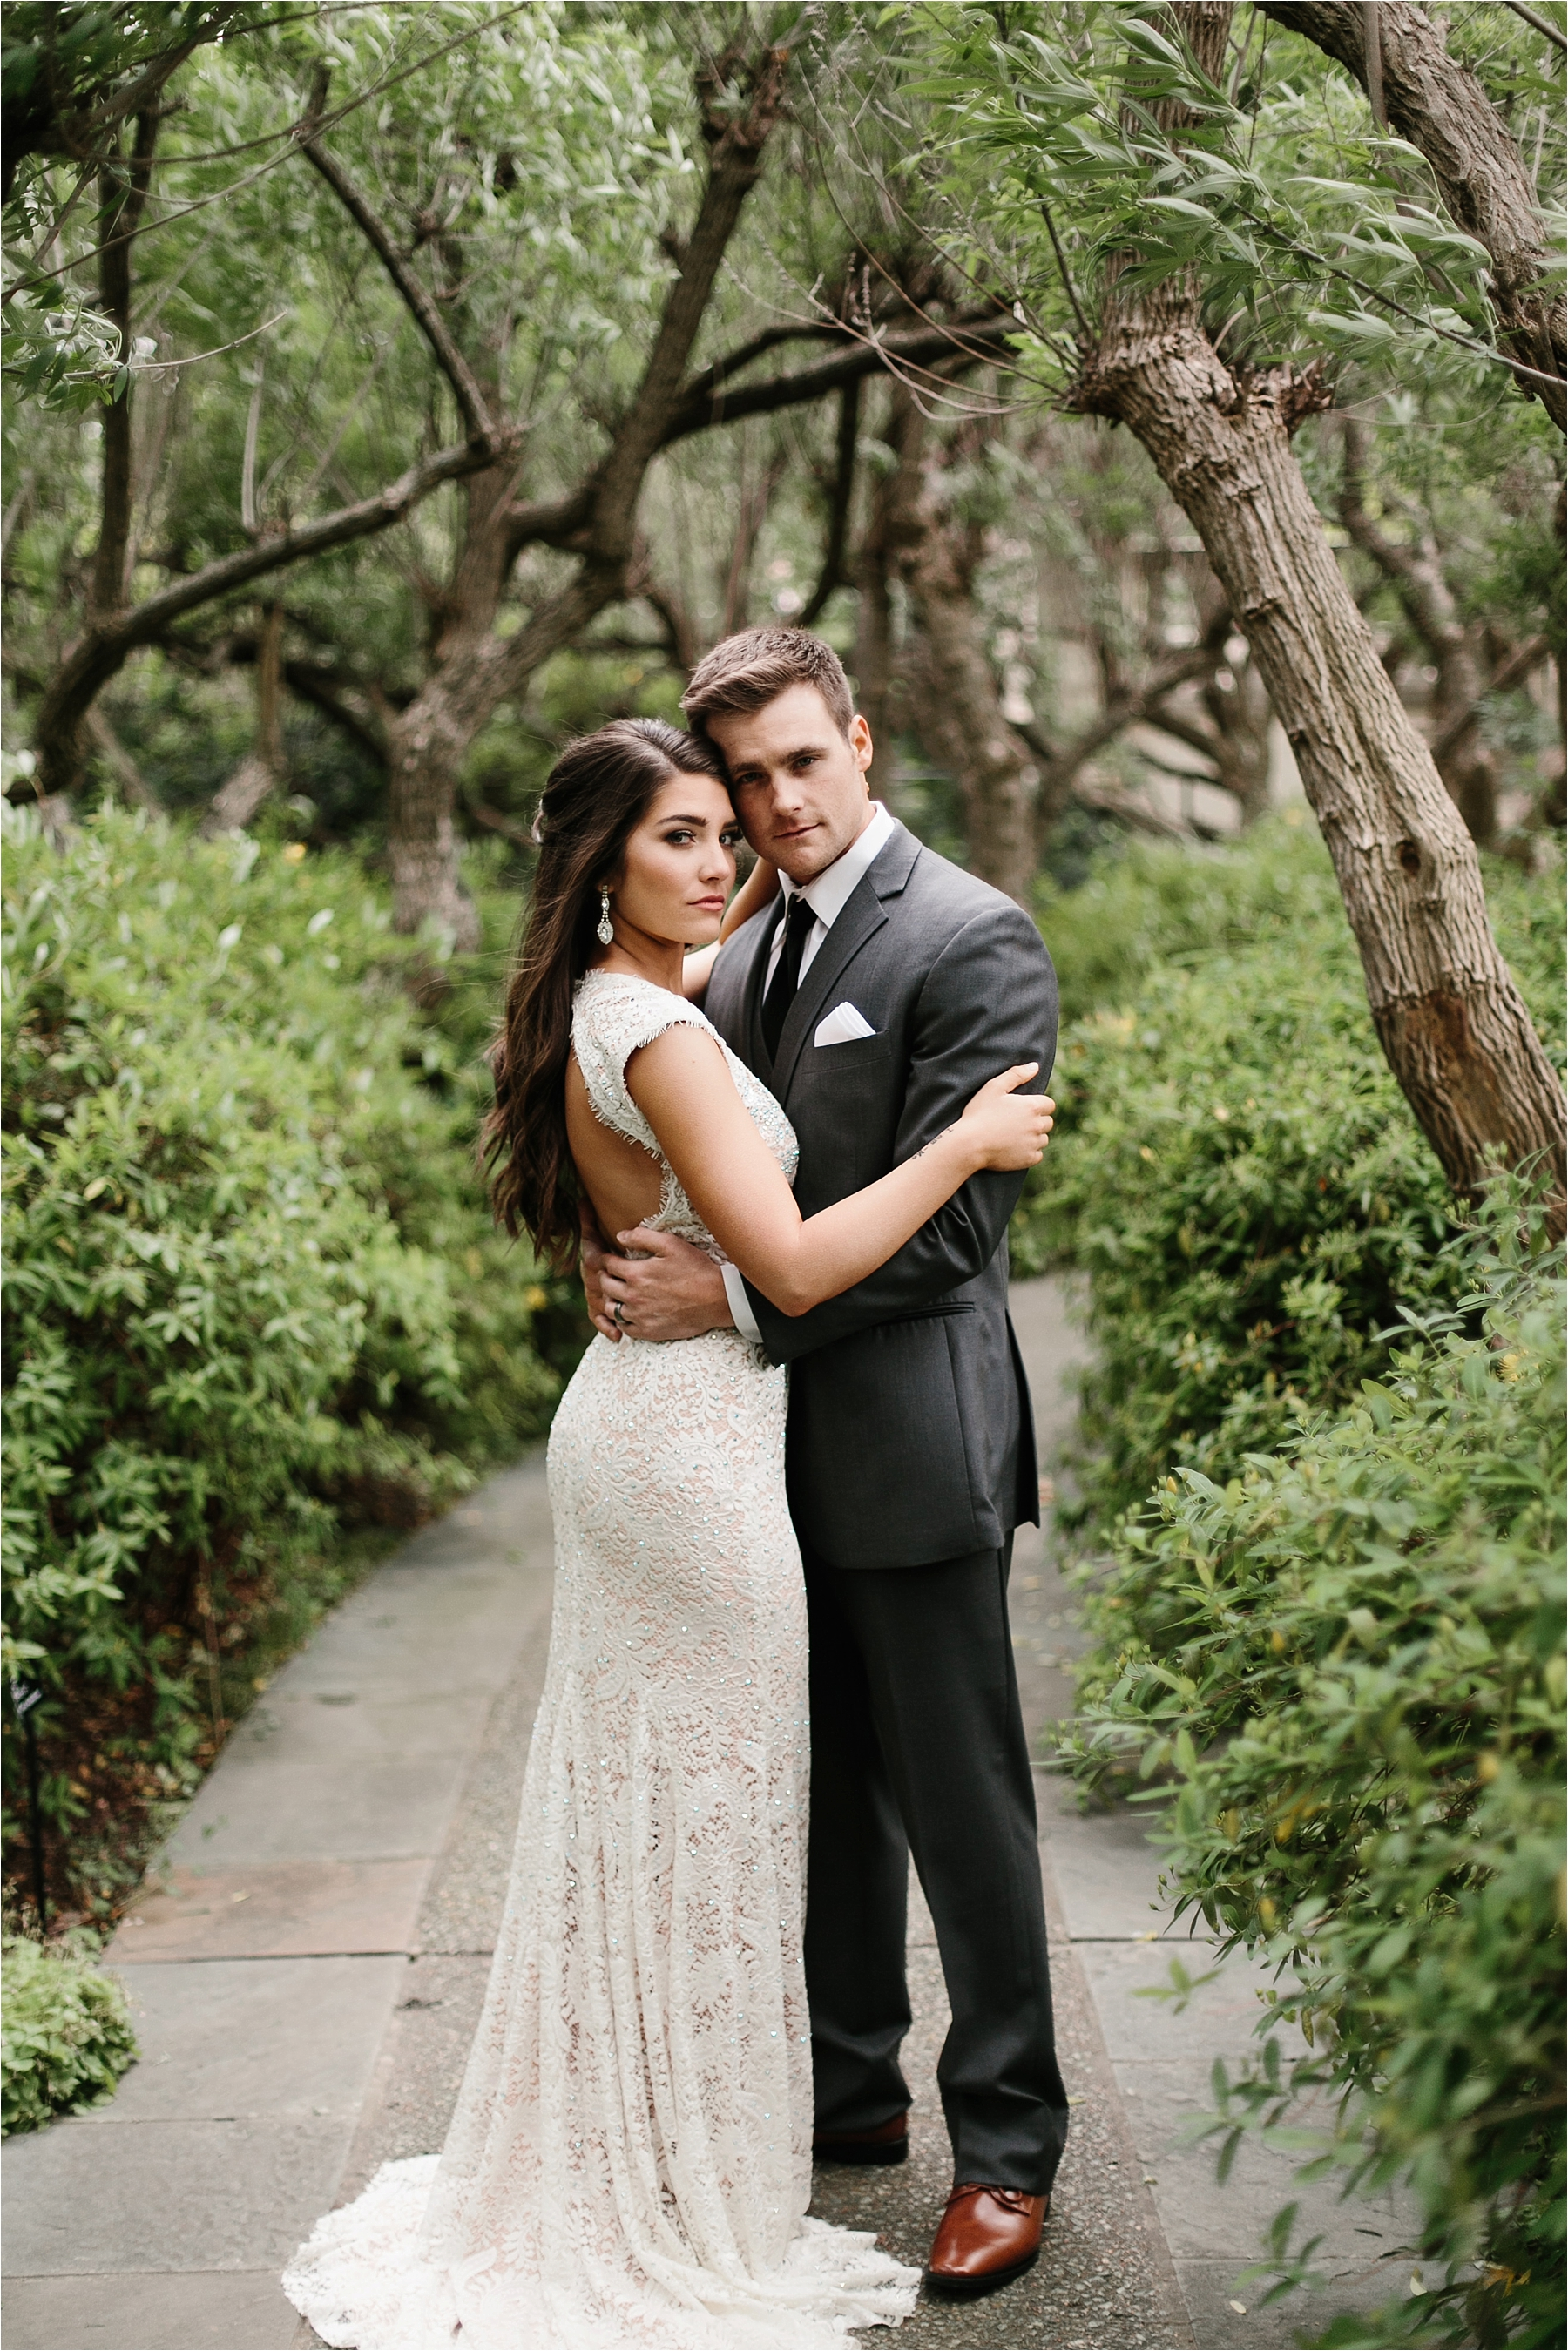 Devyn + Caden __ a Dallas Arboretum Garden Style Wedding by North Texas Wedding Photographer Rachel Meagan Photography __ 045